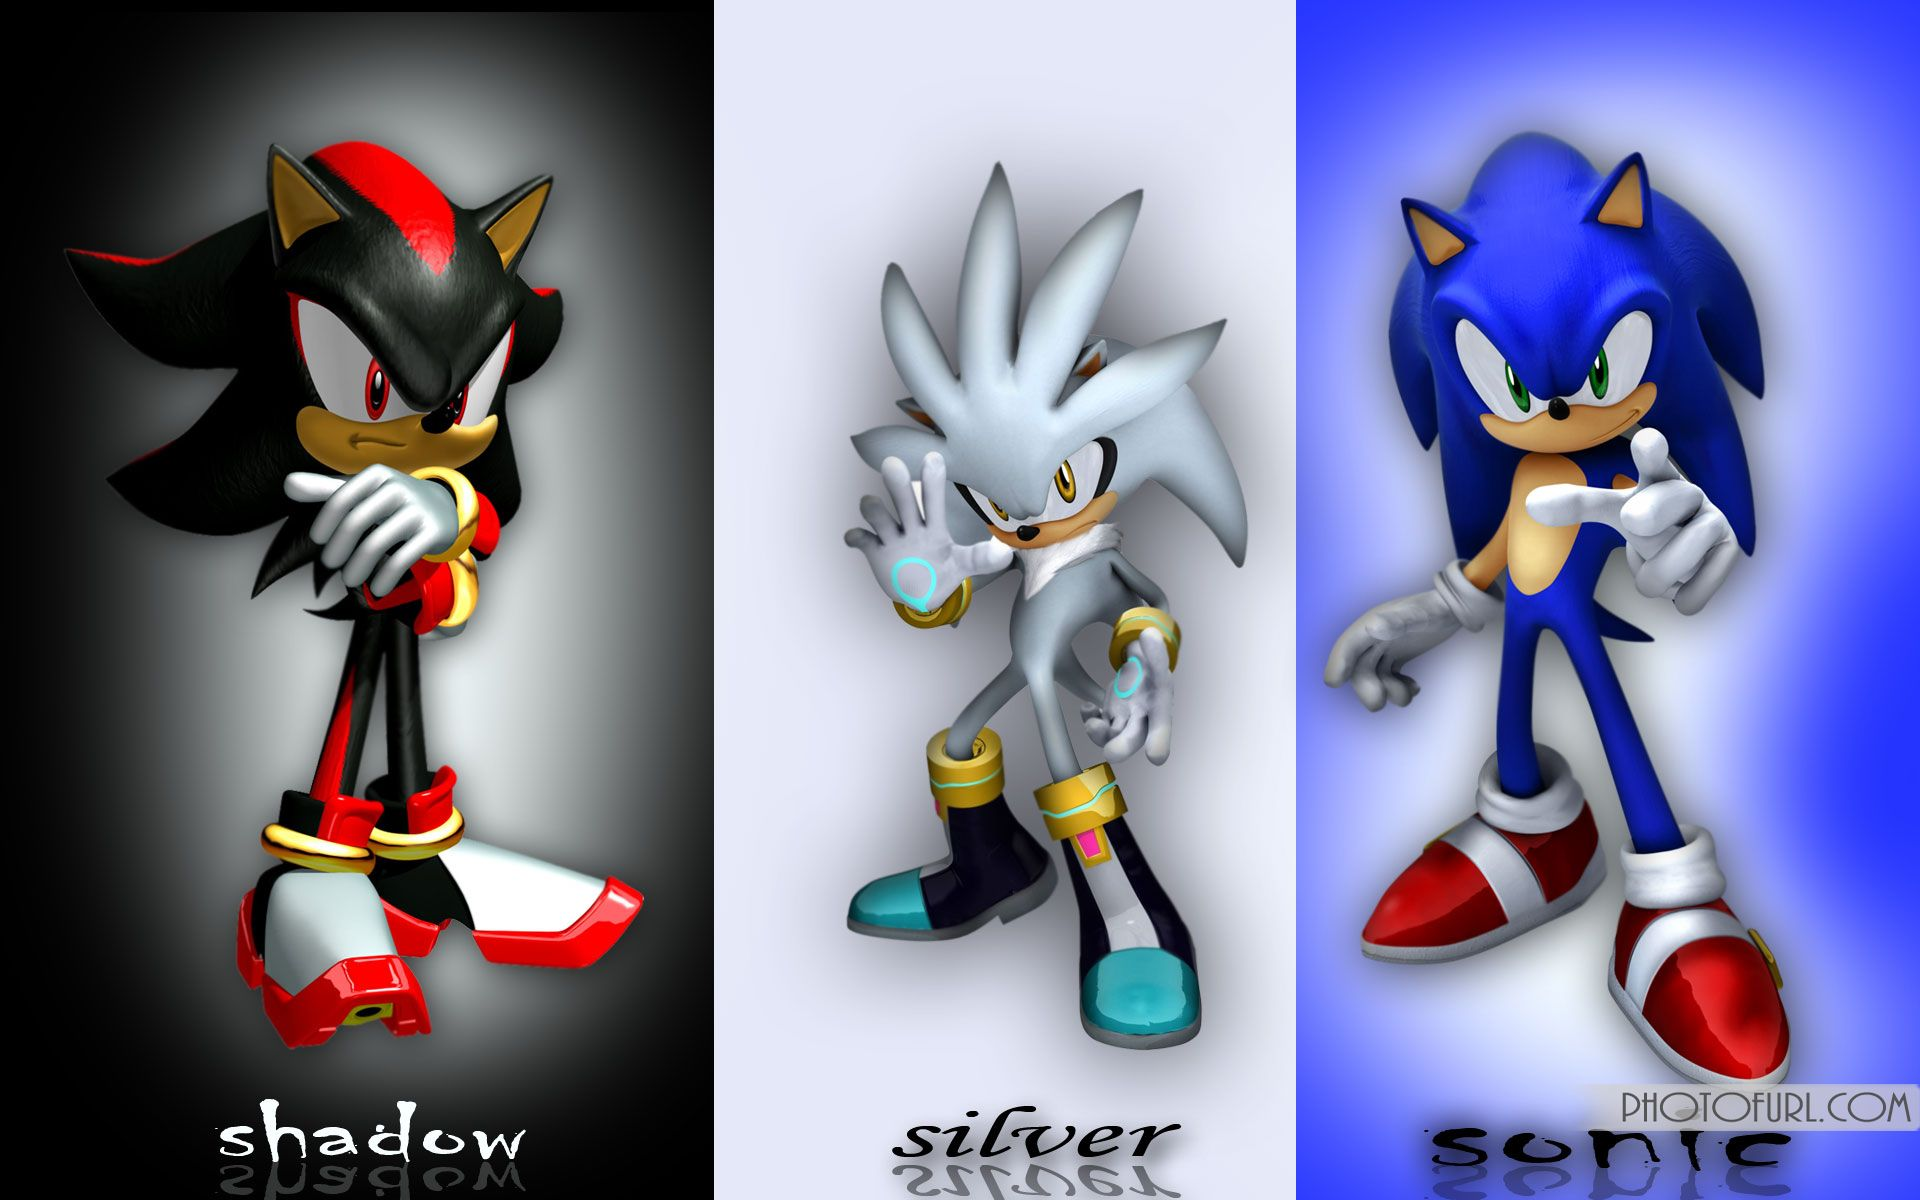 sonic heroes pictures to print  Cartoon games wallpaper / Comic